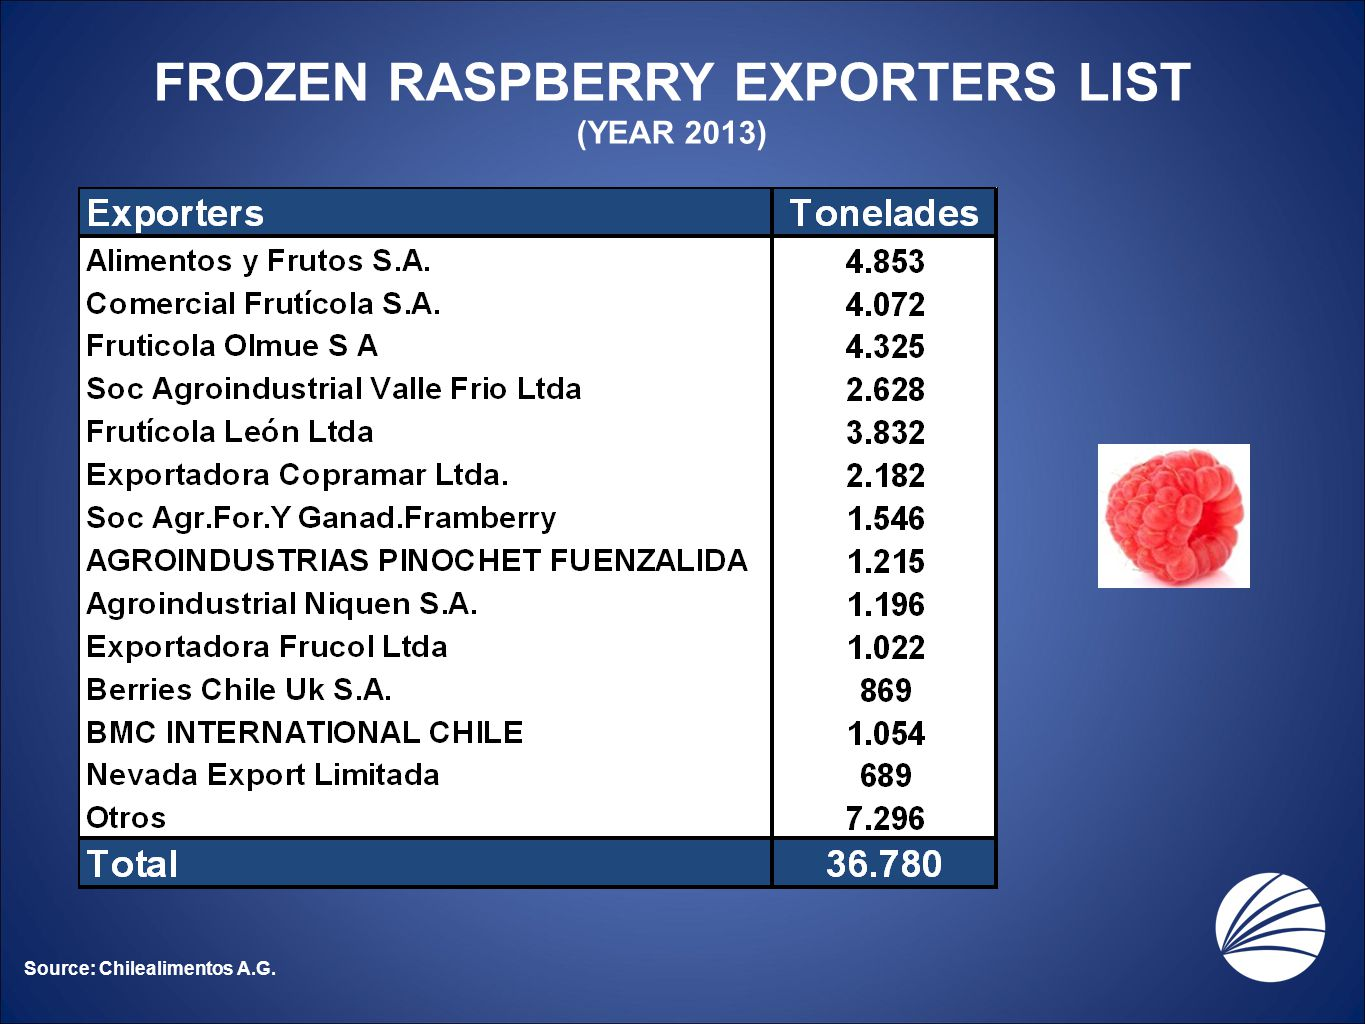 FROZEN RASPBERRY EXPORTERS LIST (YEAR 2013) Source: Chilealimentos A.G.